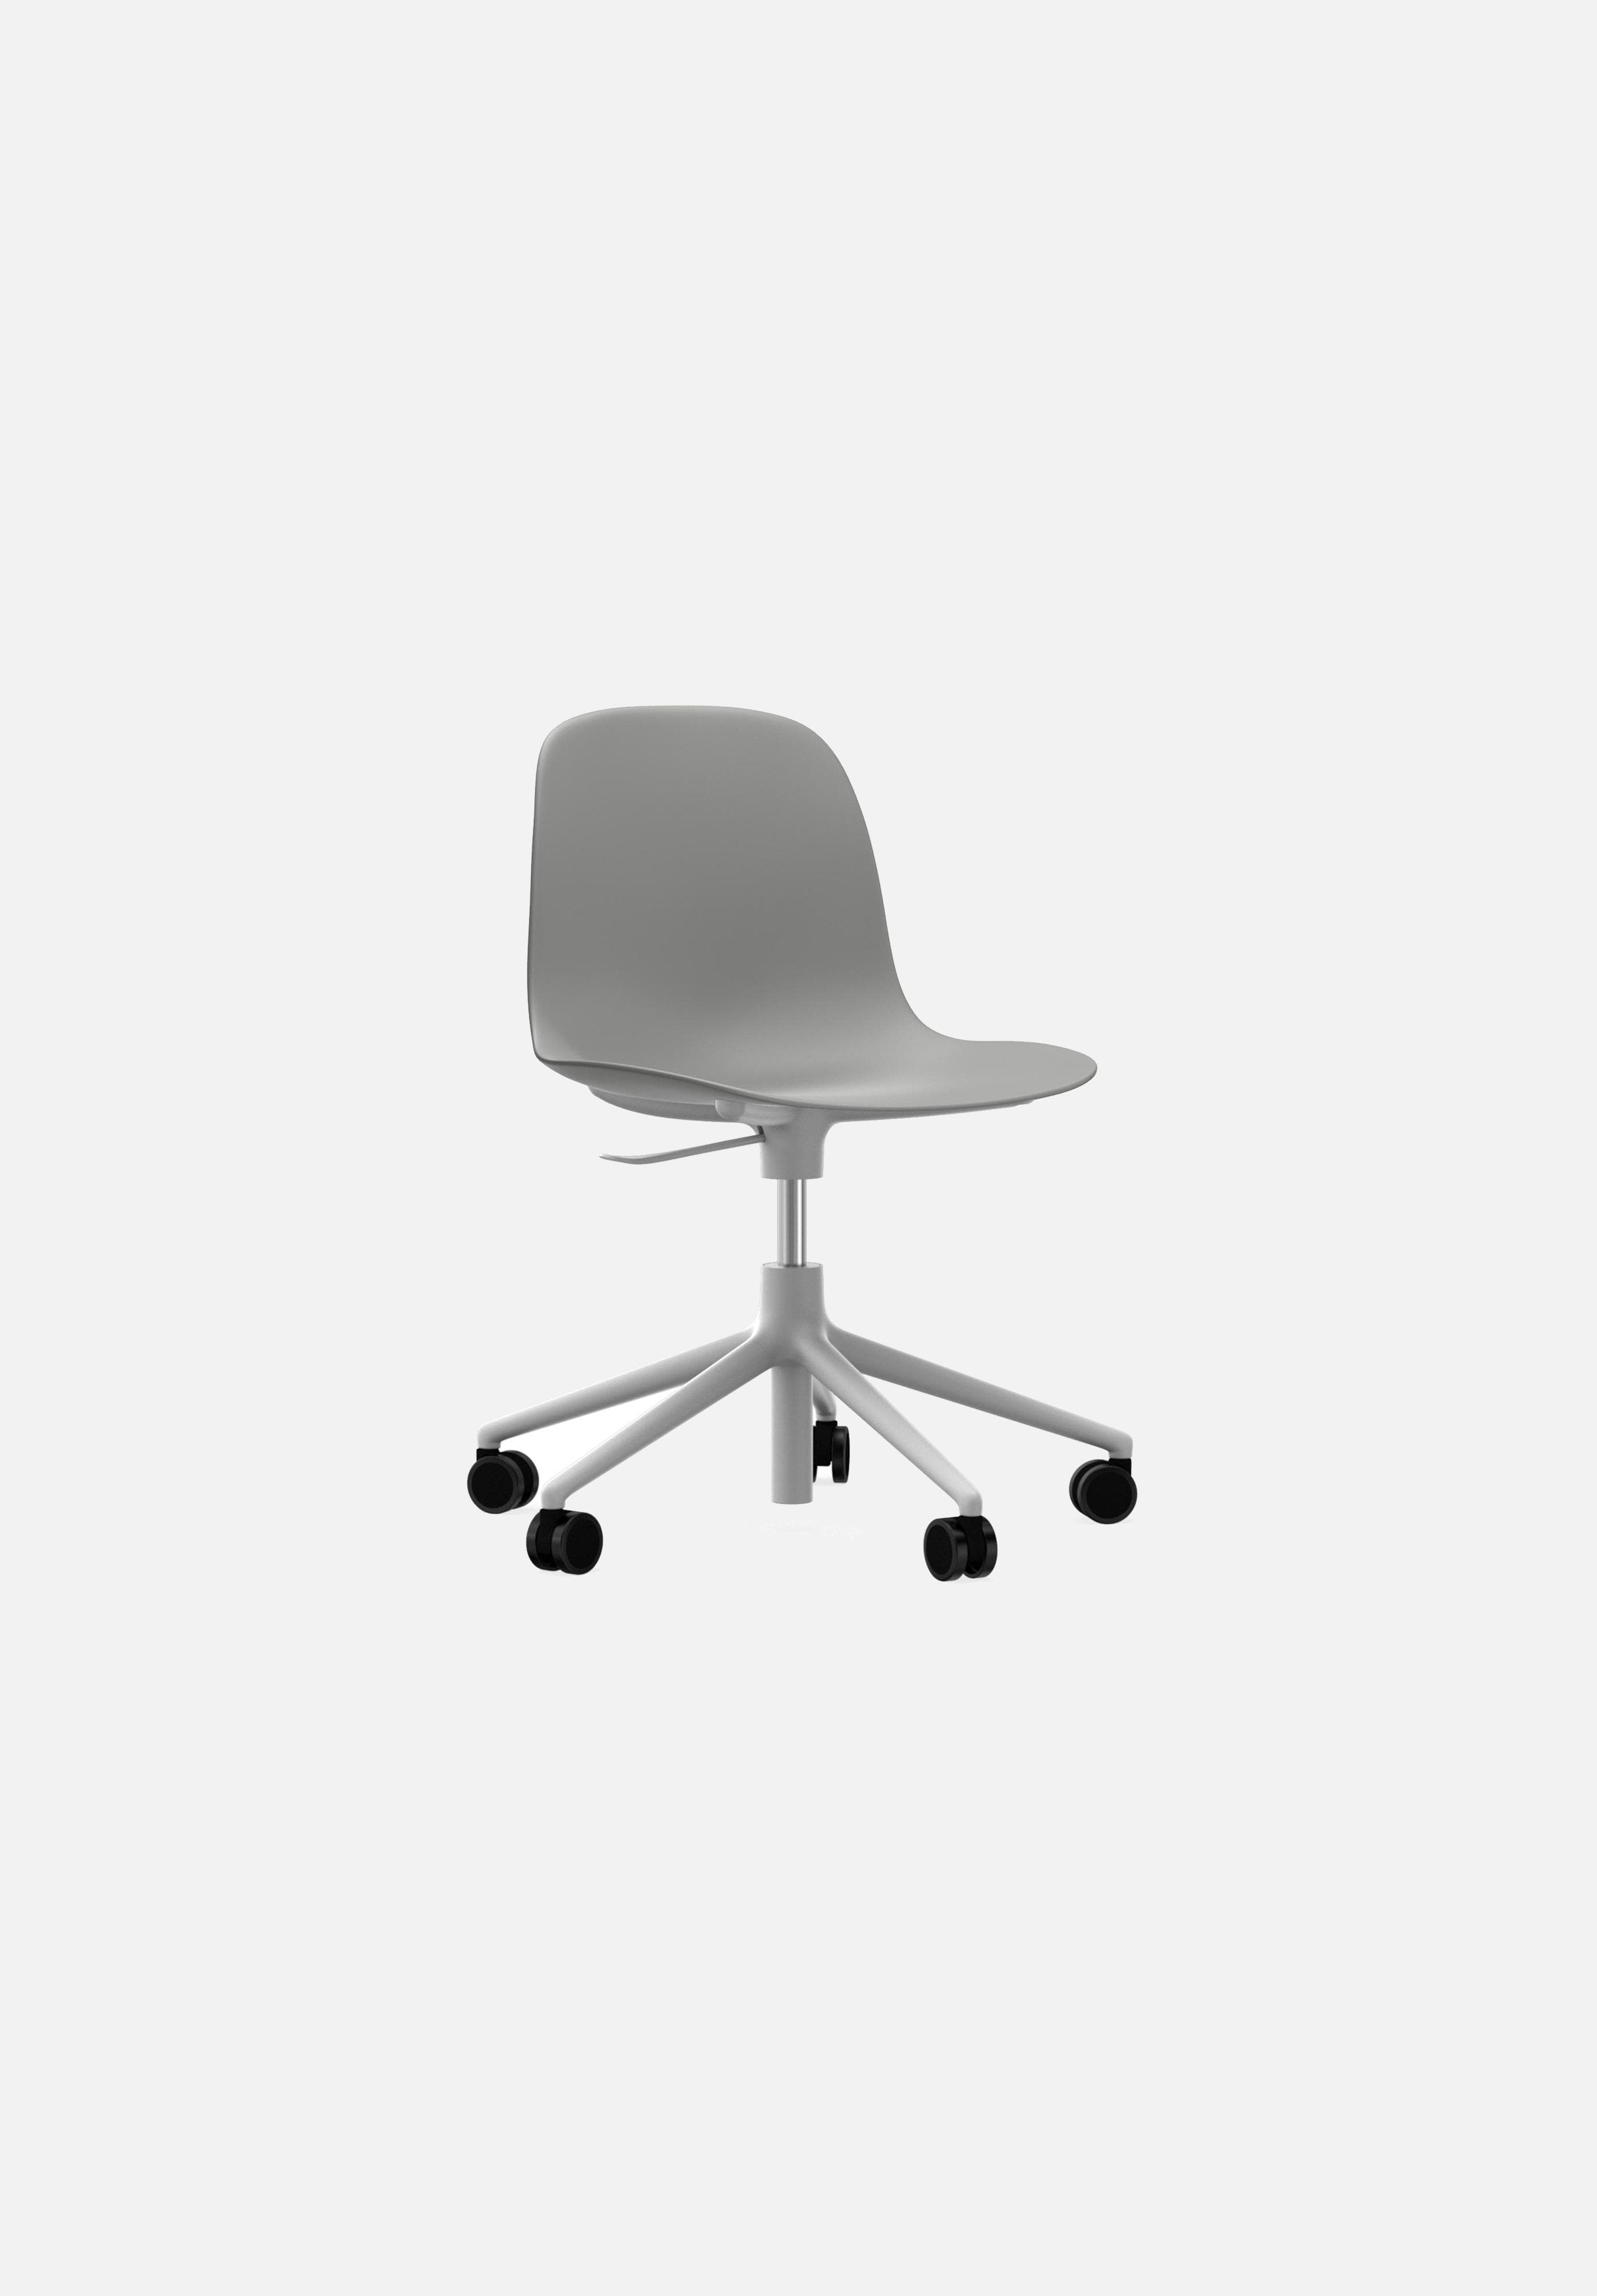 Form Chair — Swivel Gaslift-Simon Legald-Normann Copenhagen-Grey-White Aluminum-Average